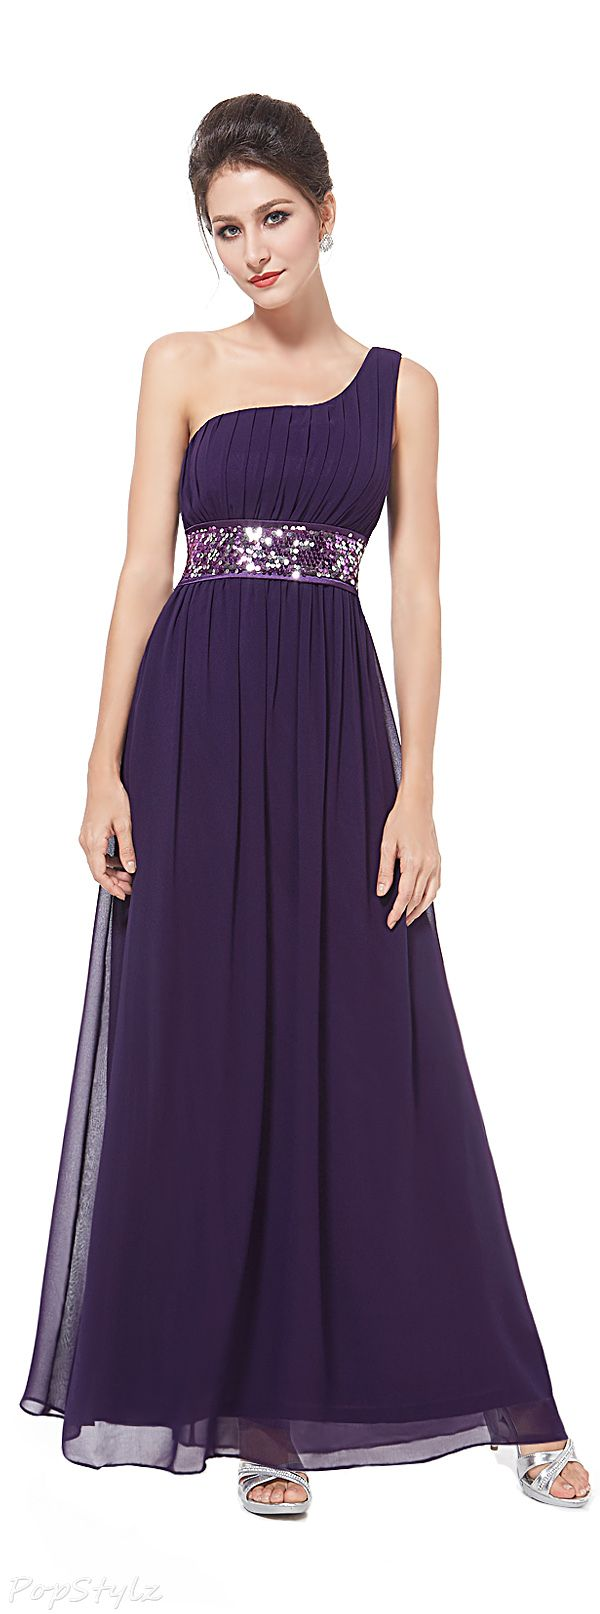 Pretty Sequins Accents Gown | Things to Wear | Pinterest